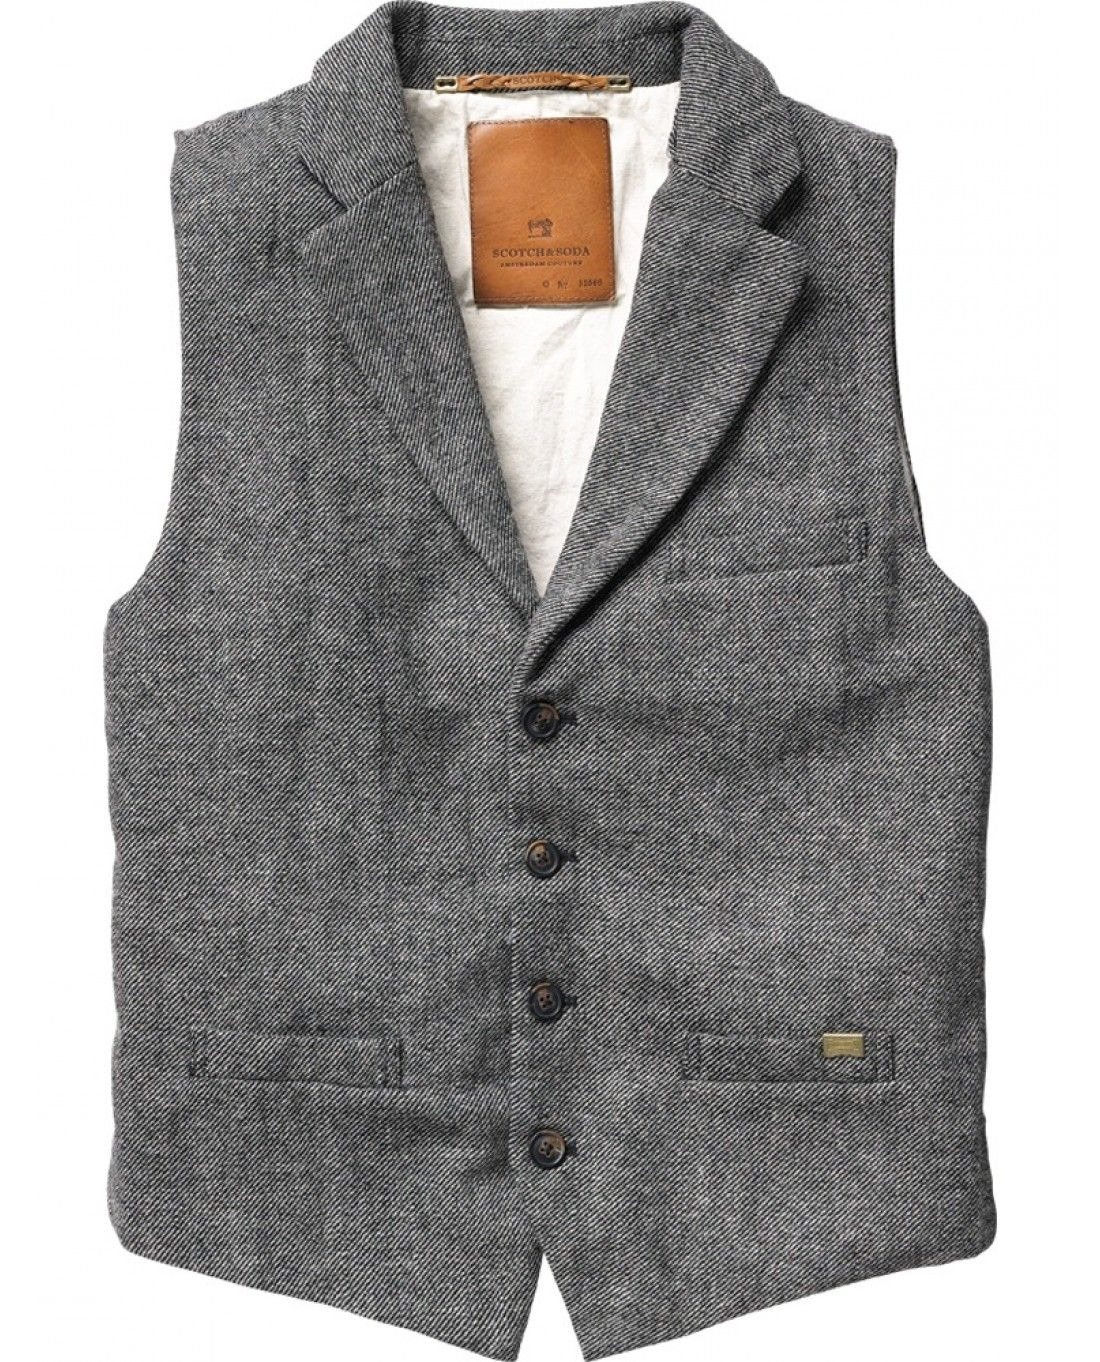 There is nothing better than a man who can wear a vest and wear it right...